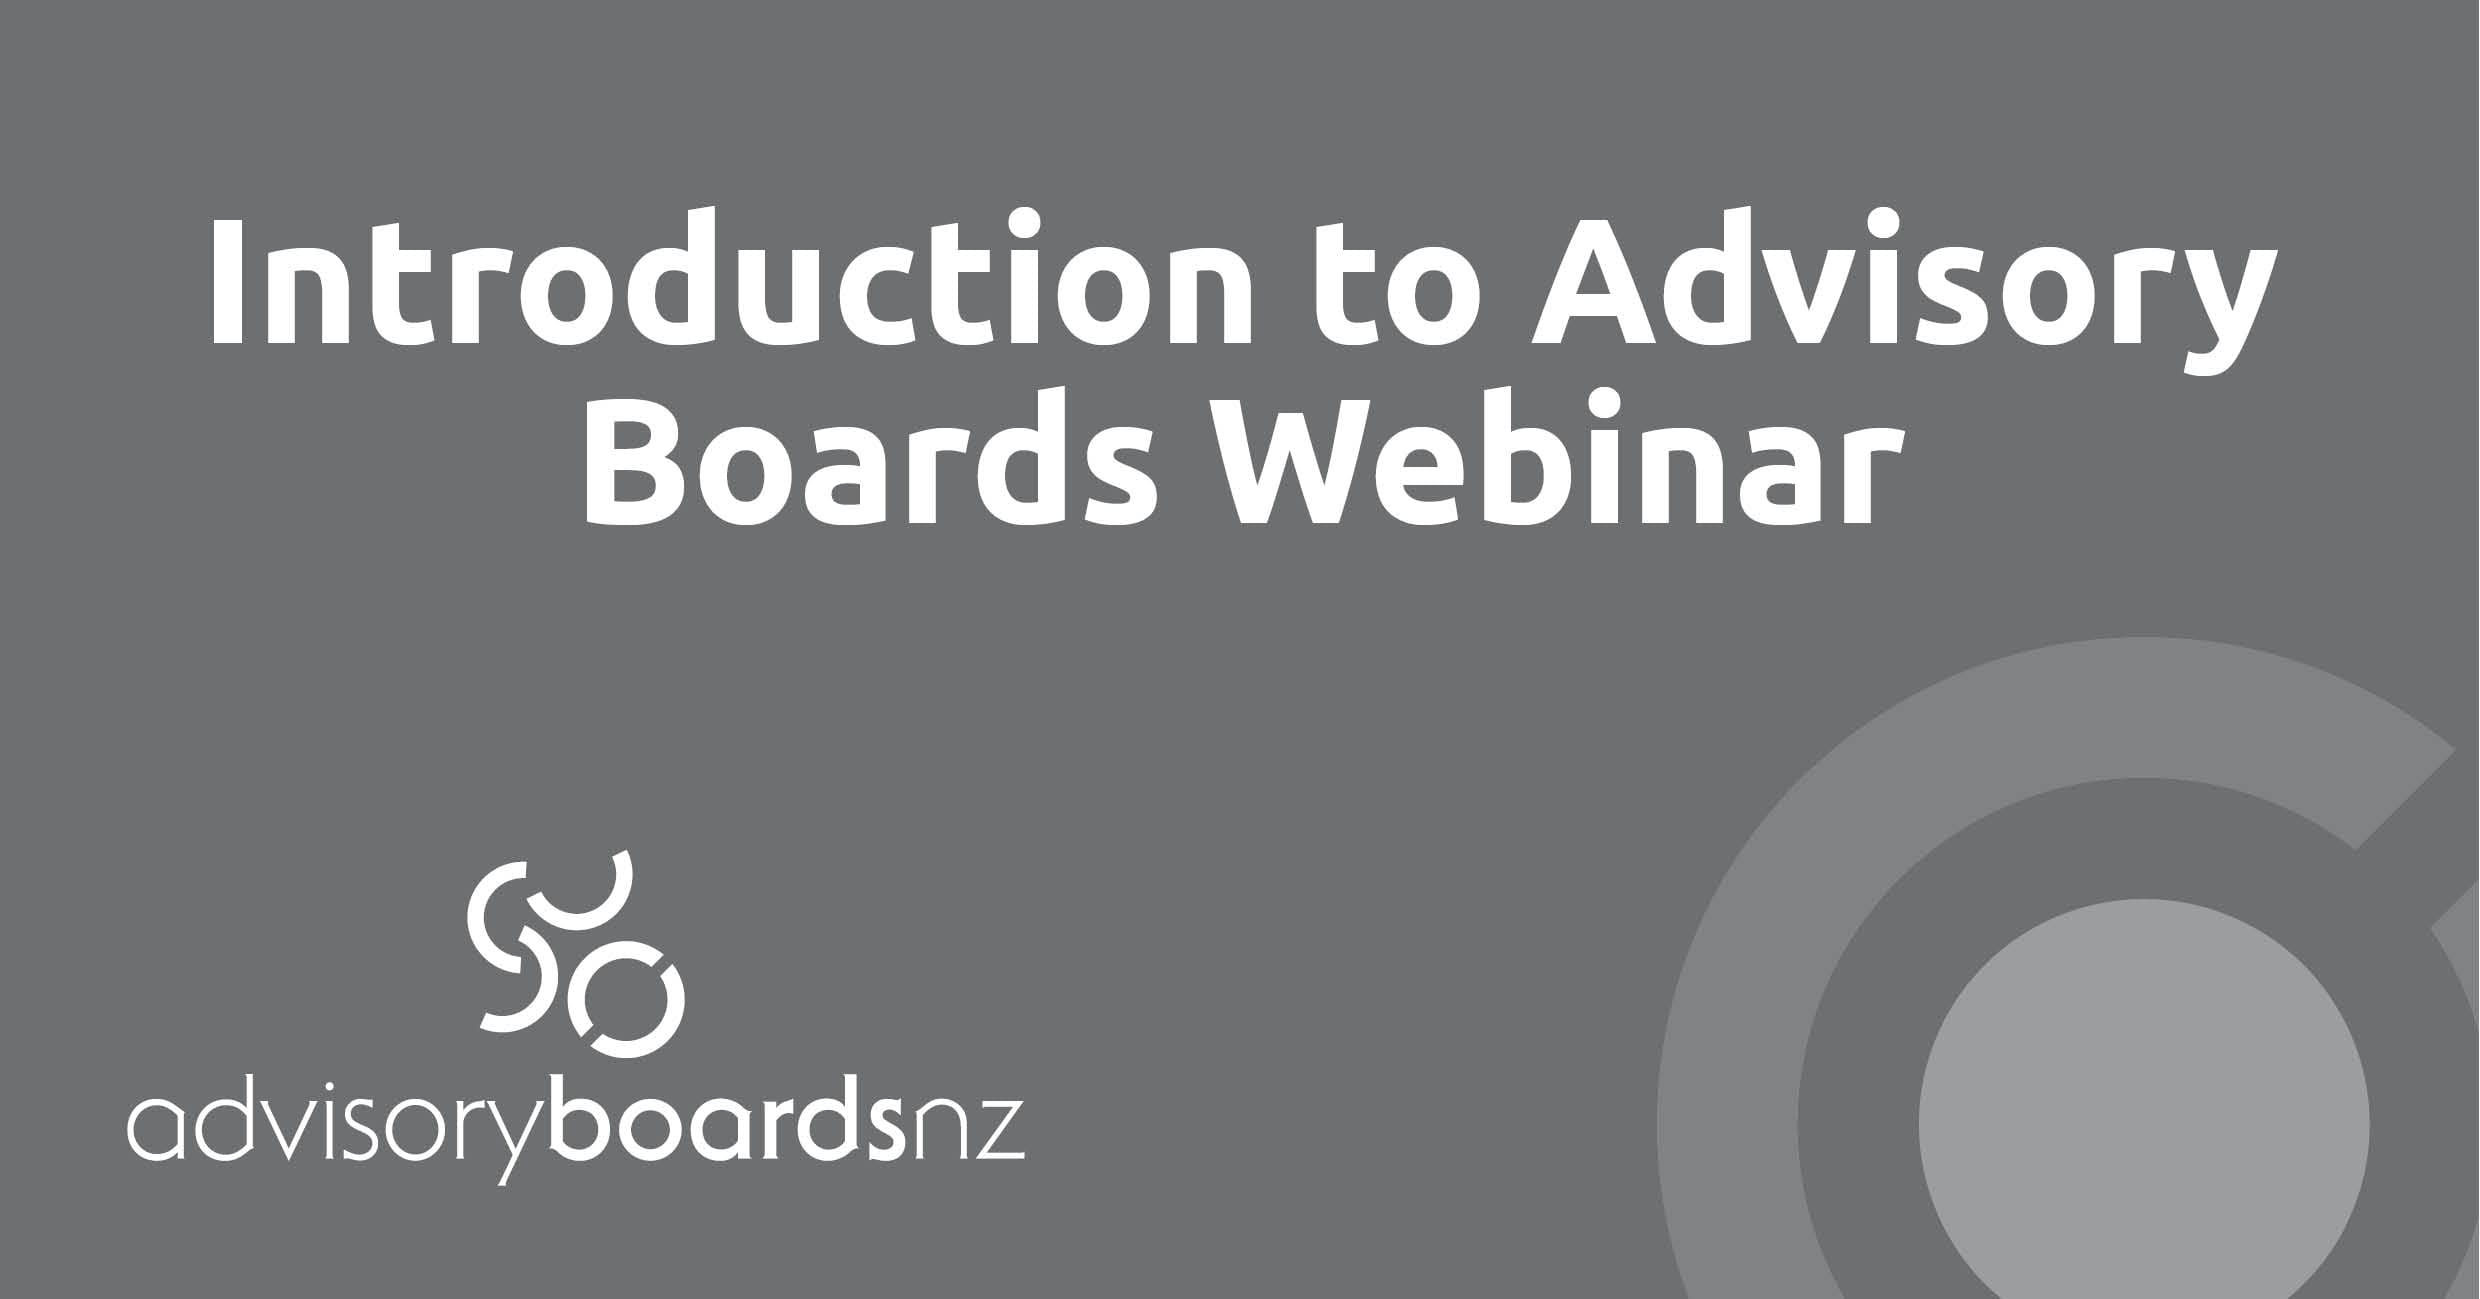 Introduction to Advisory Boards - Webinar